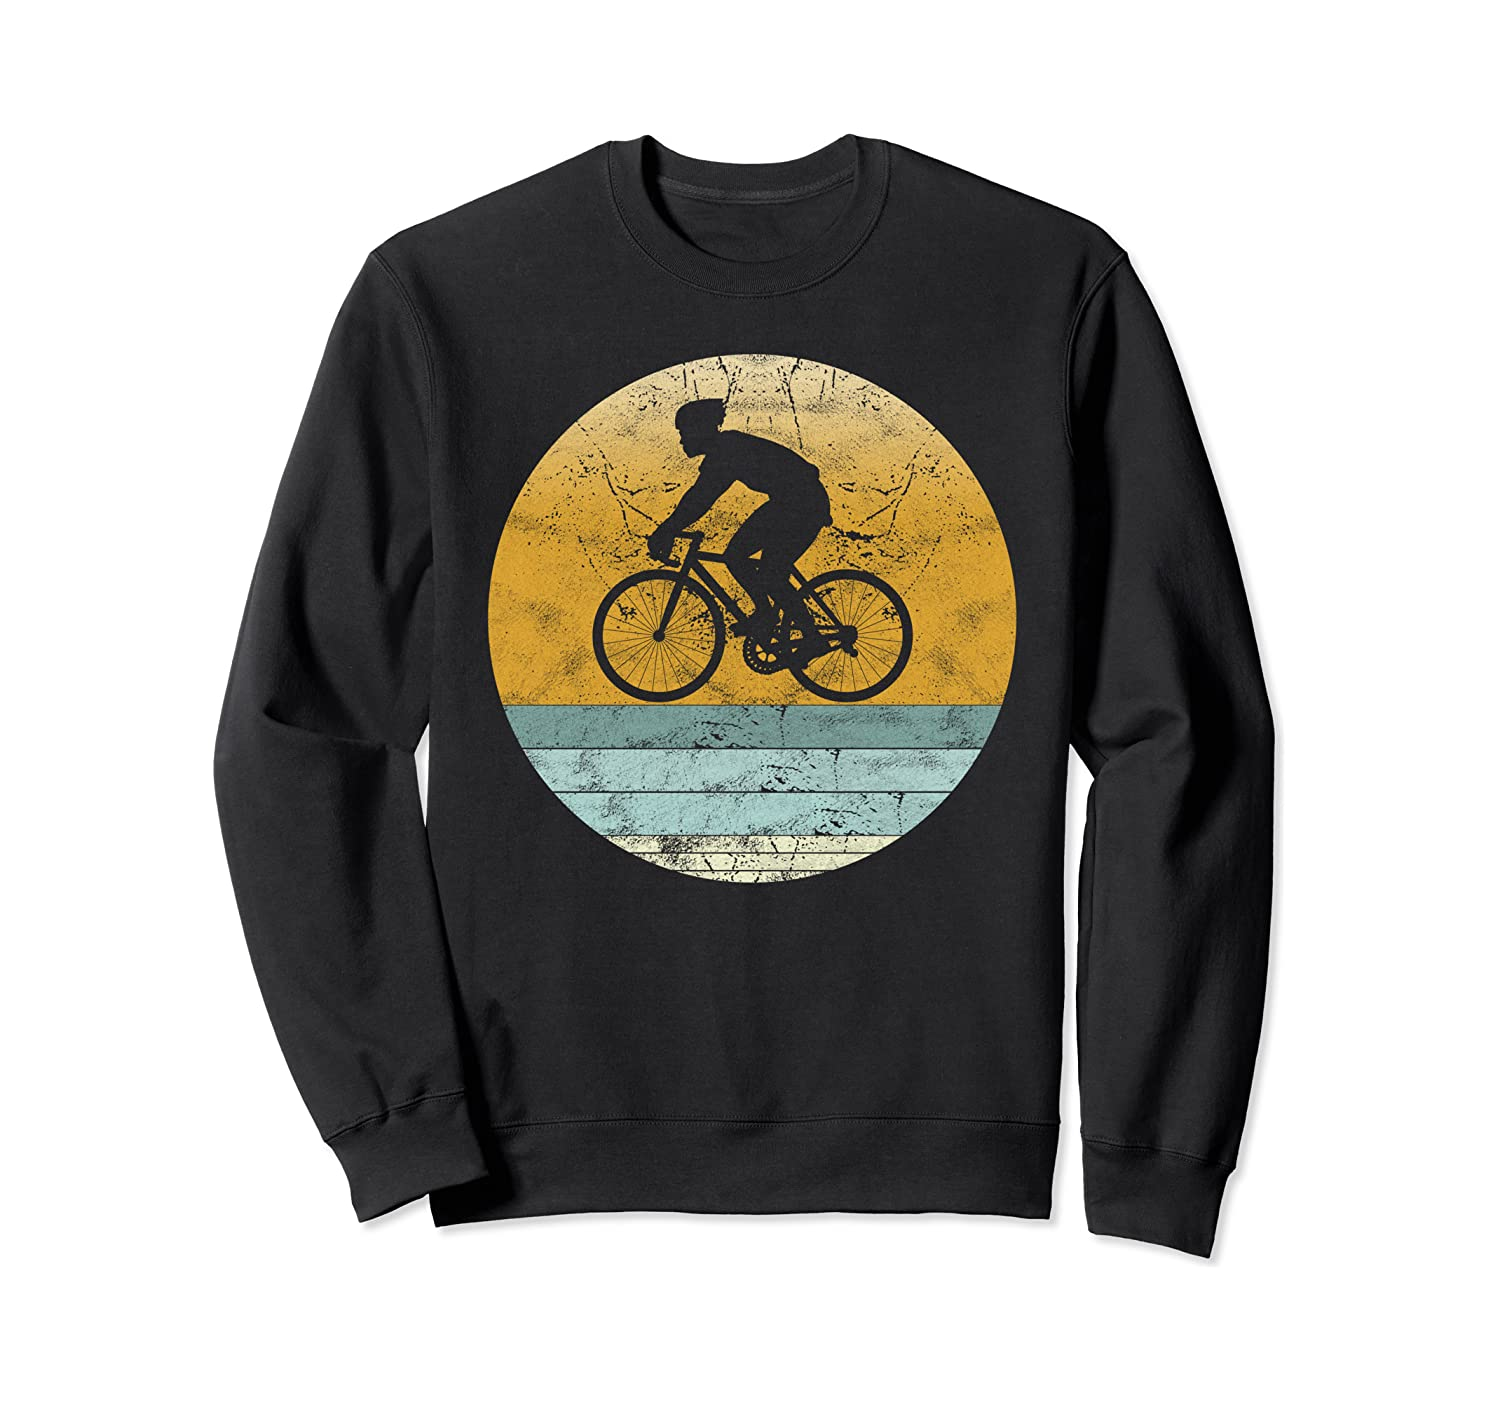 Retro Cycle Vintage Style Cycling Sport Gift - Unisex Sweatshirt